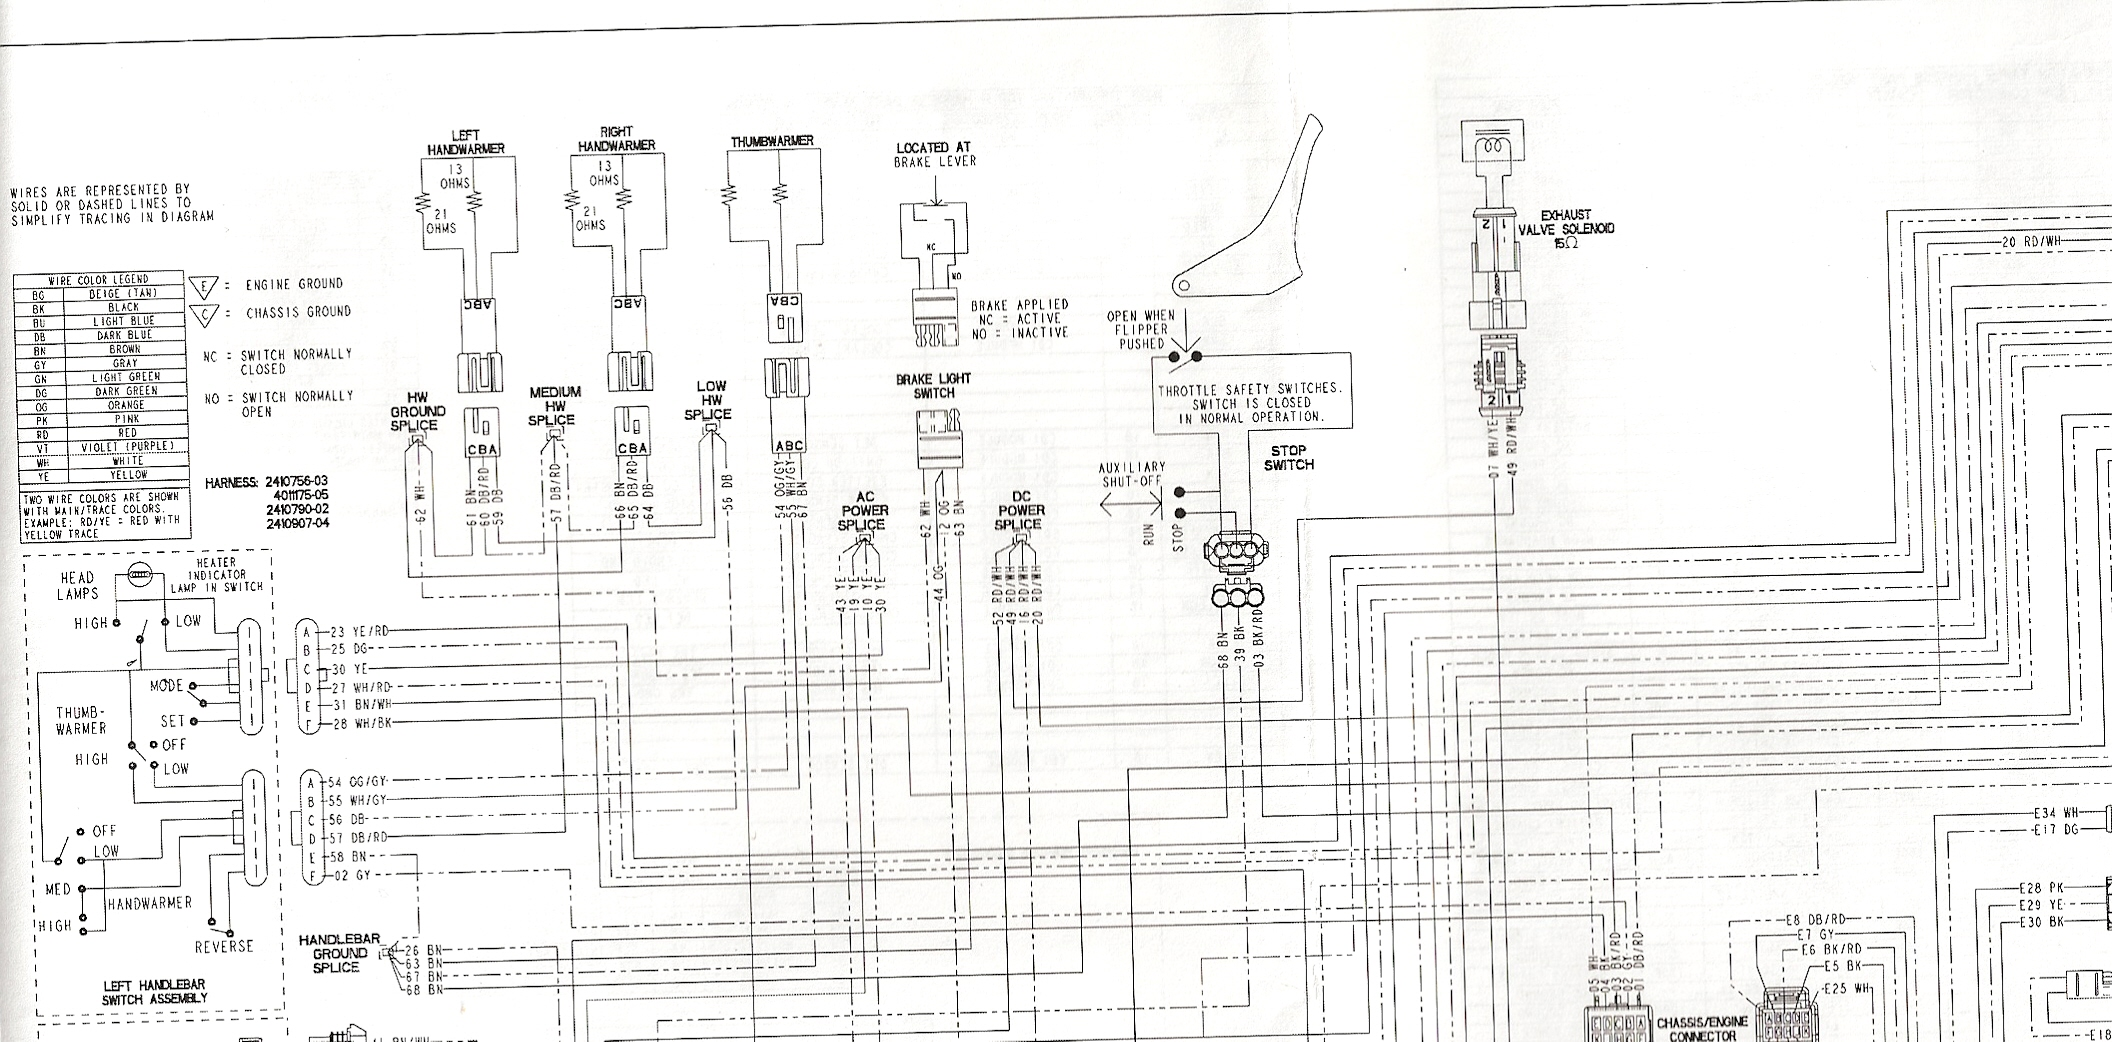 2002 Suzuki Savage 650 Wiring Diagram Trusted Diagrams 81 Gsx600f Detailed Schematics